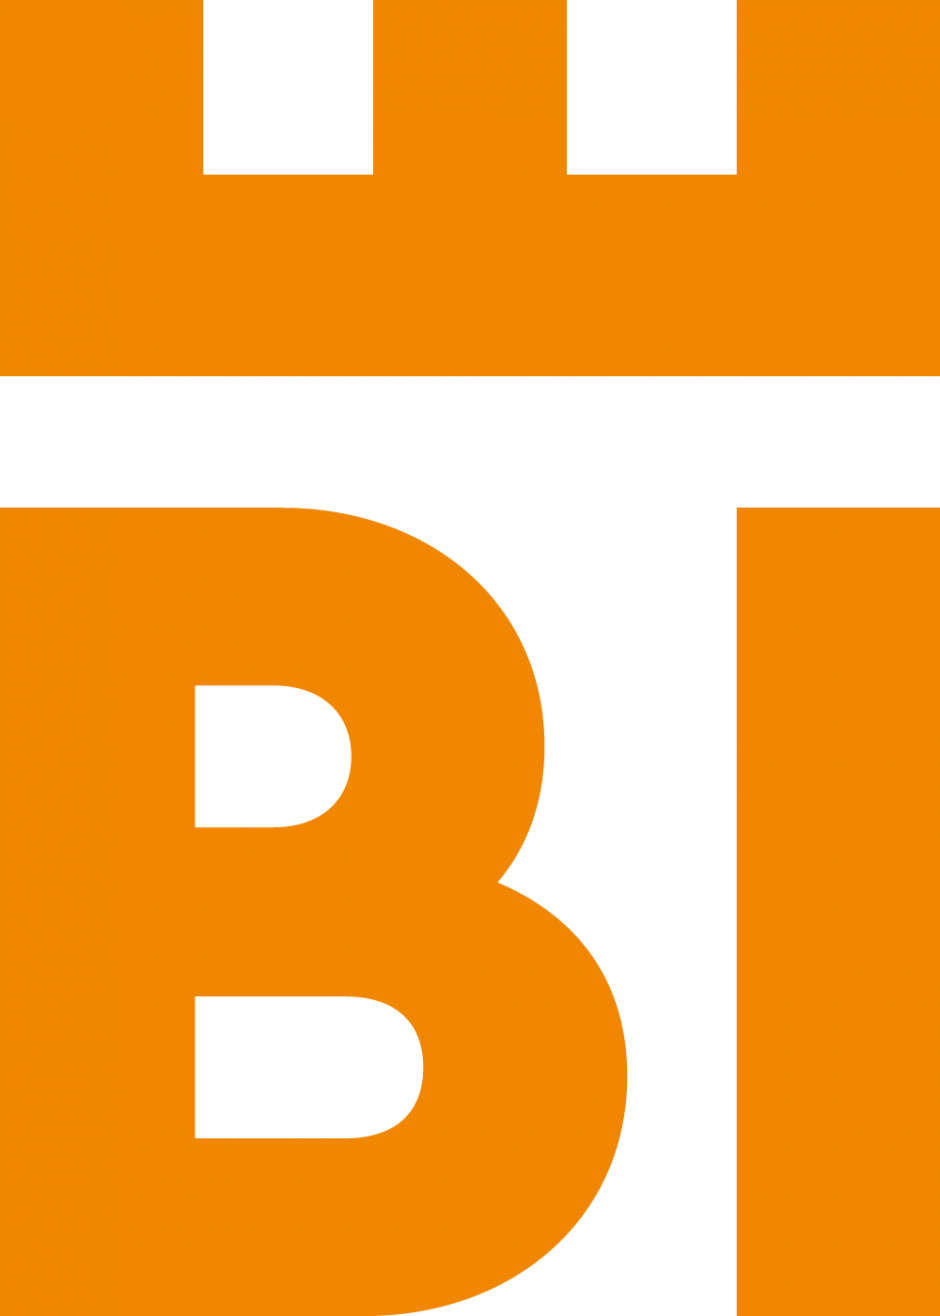 Logovariante orange